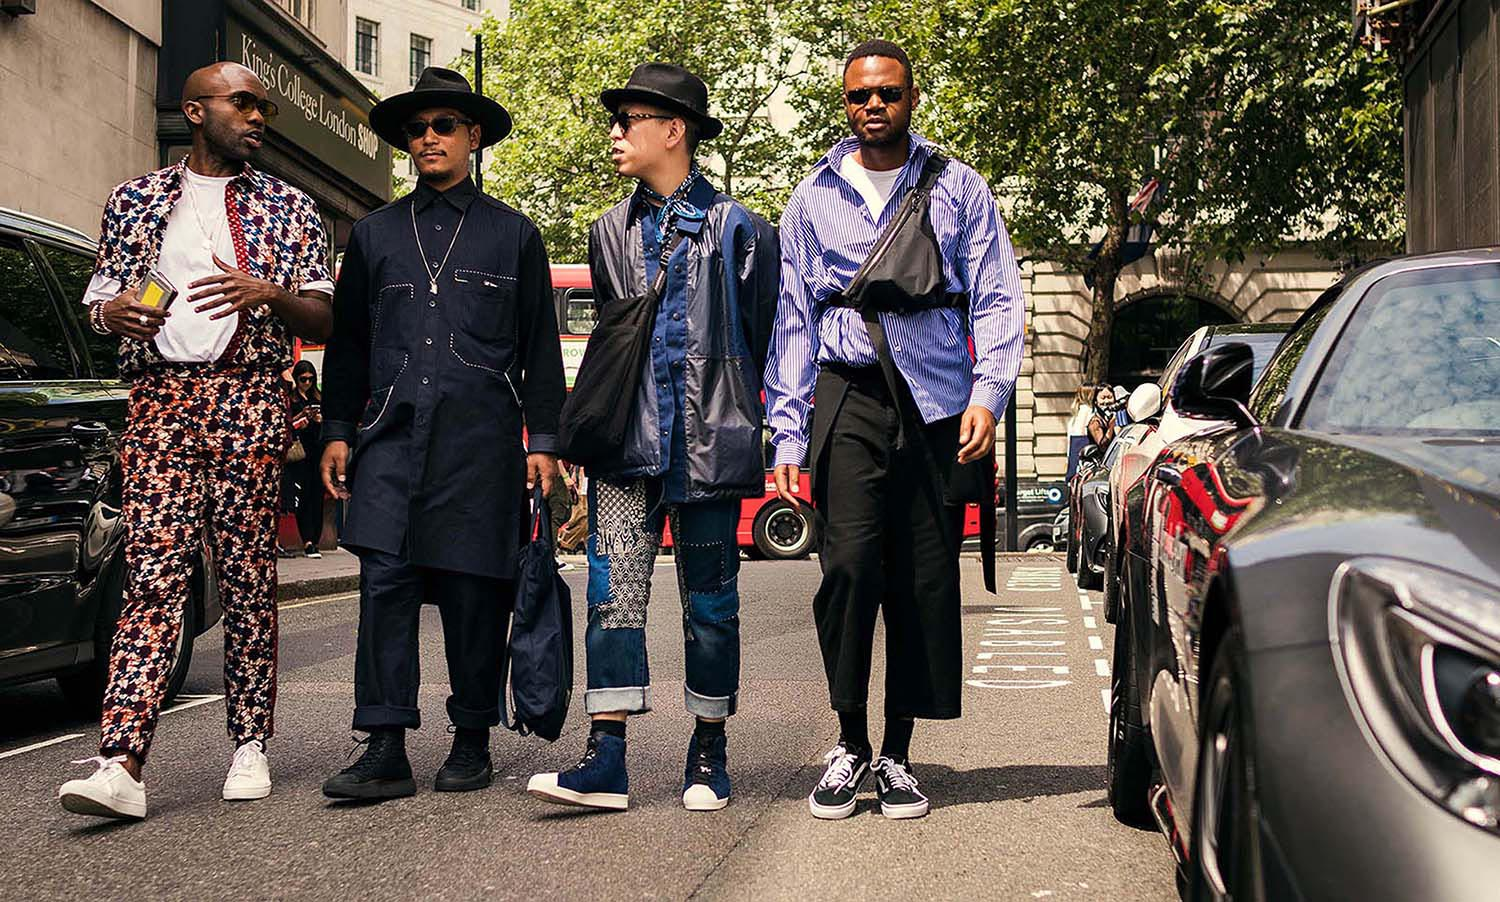 Geoff K. Cooper, Eshan Kali, John Jarret, and Kieron Watts captured outside the men's fashion shows at London Fashion Week Men's. (LFWM Street Style by Olajide (JJ) Smith (Spotted By Mr. Smith for Sagaboi. Diversity in Street Style. Representation in stock imagery.